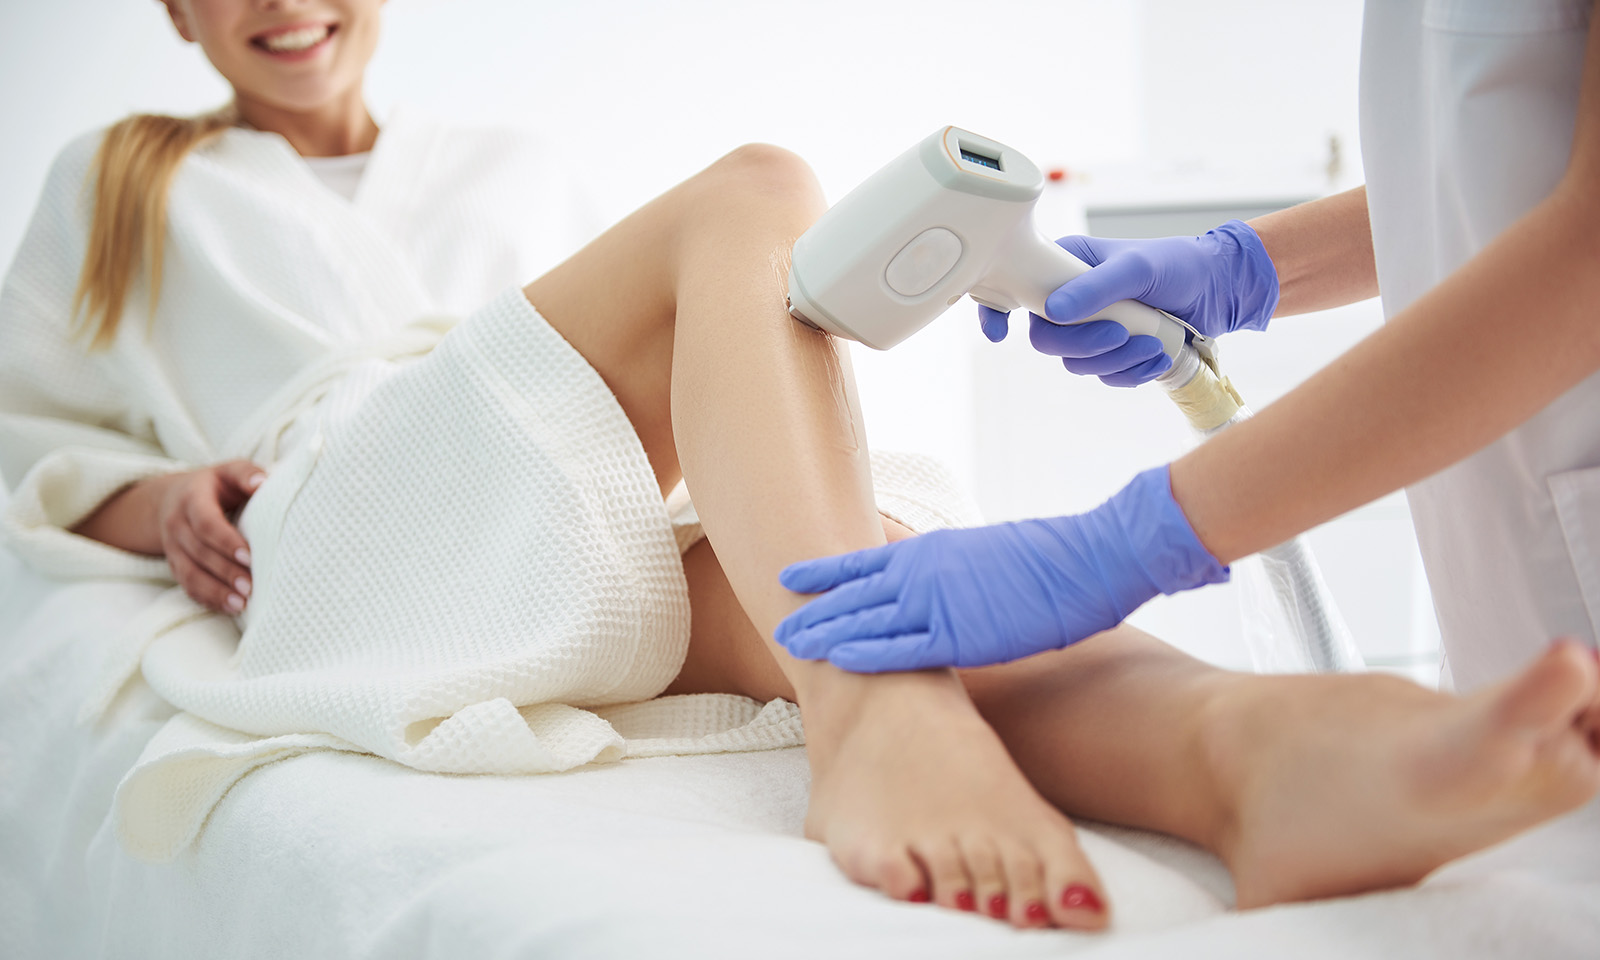 basics-of-laser-hair-removal-main-image-woman-getting-hair-removed-on-legs